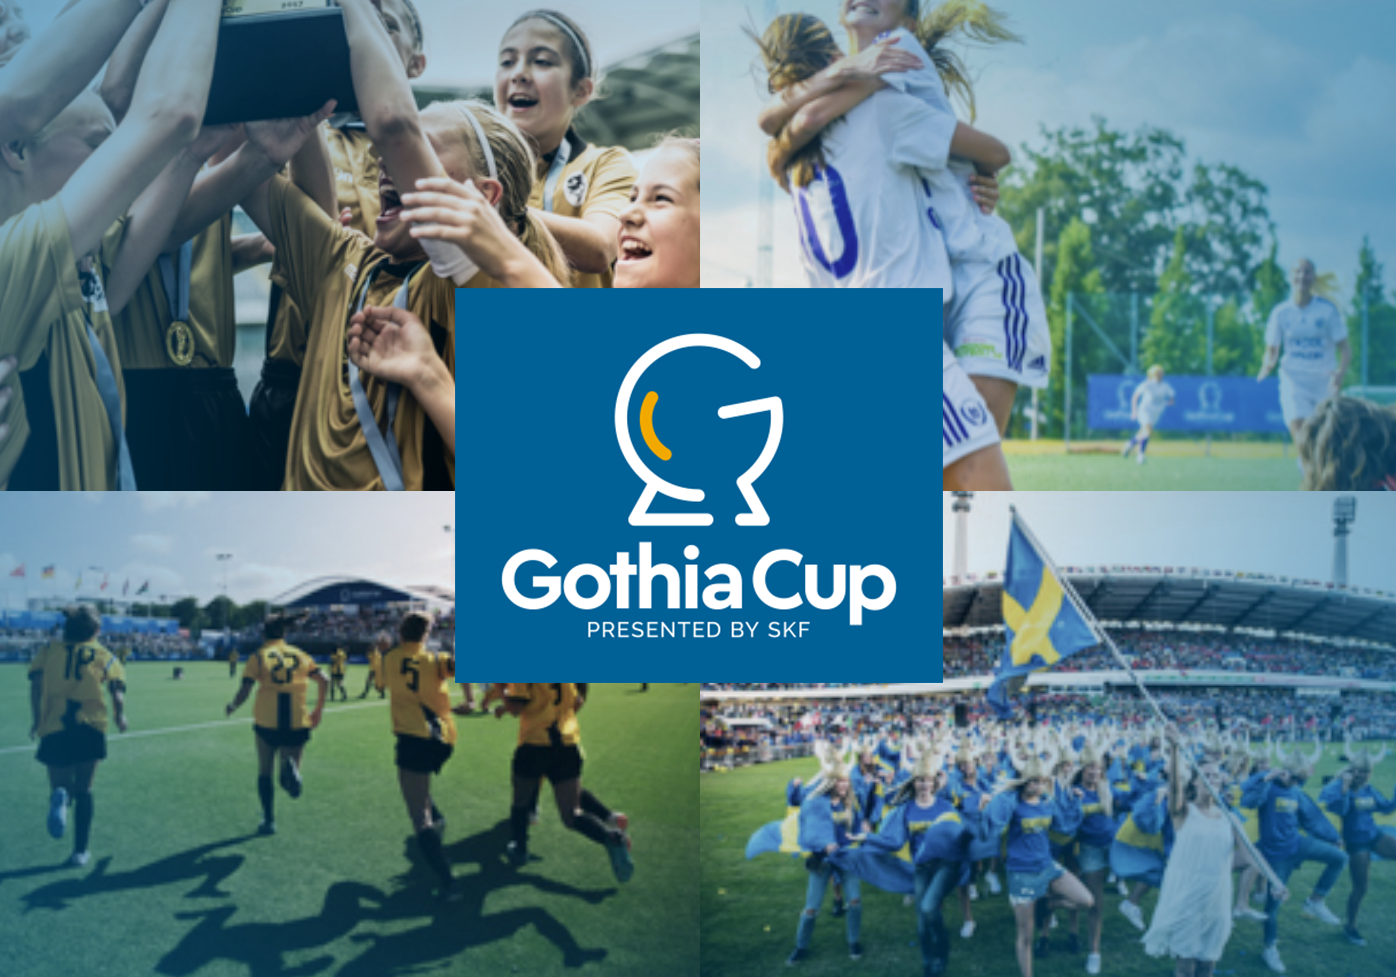 https://neh.com/images/gothiacup.png